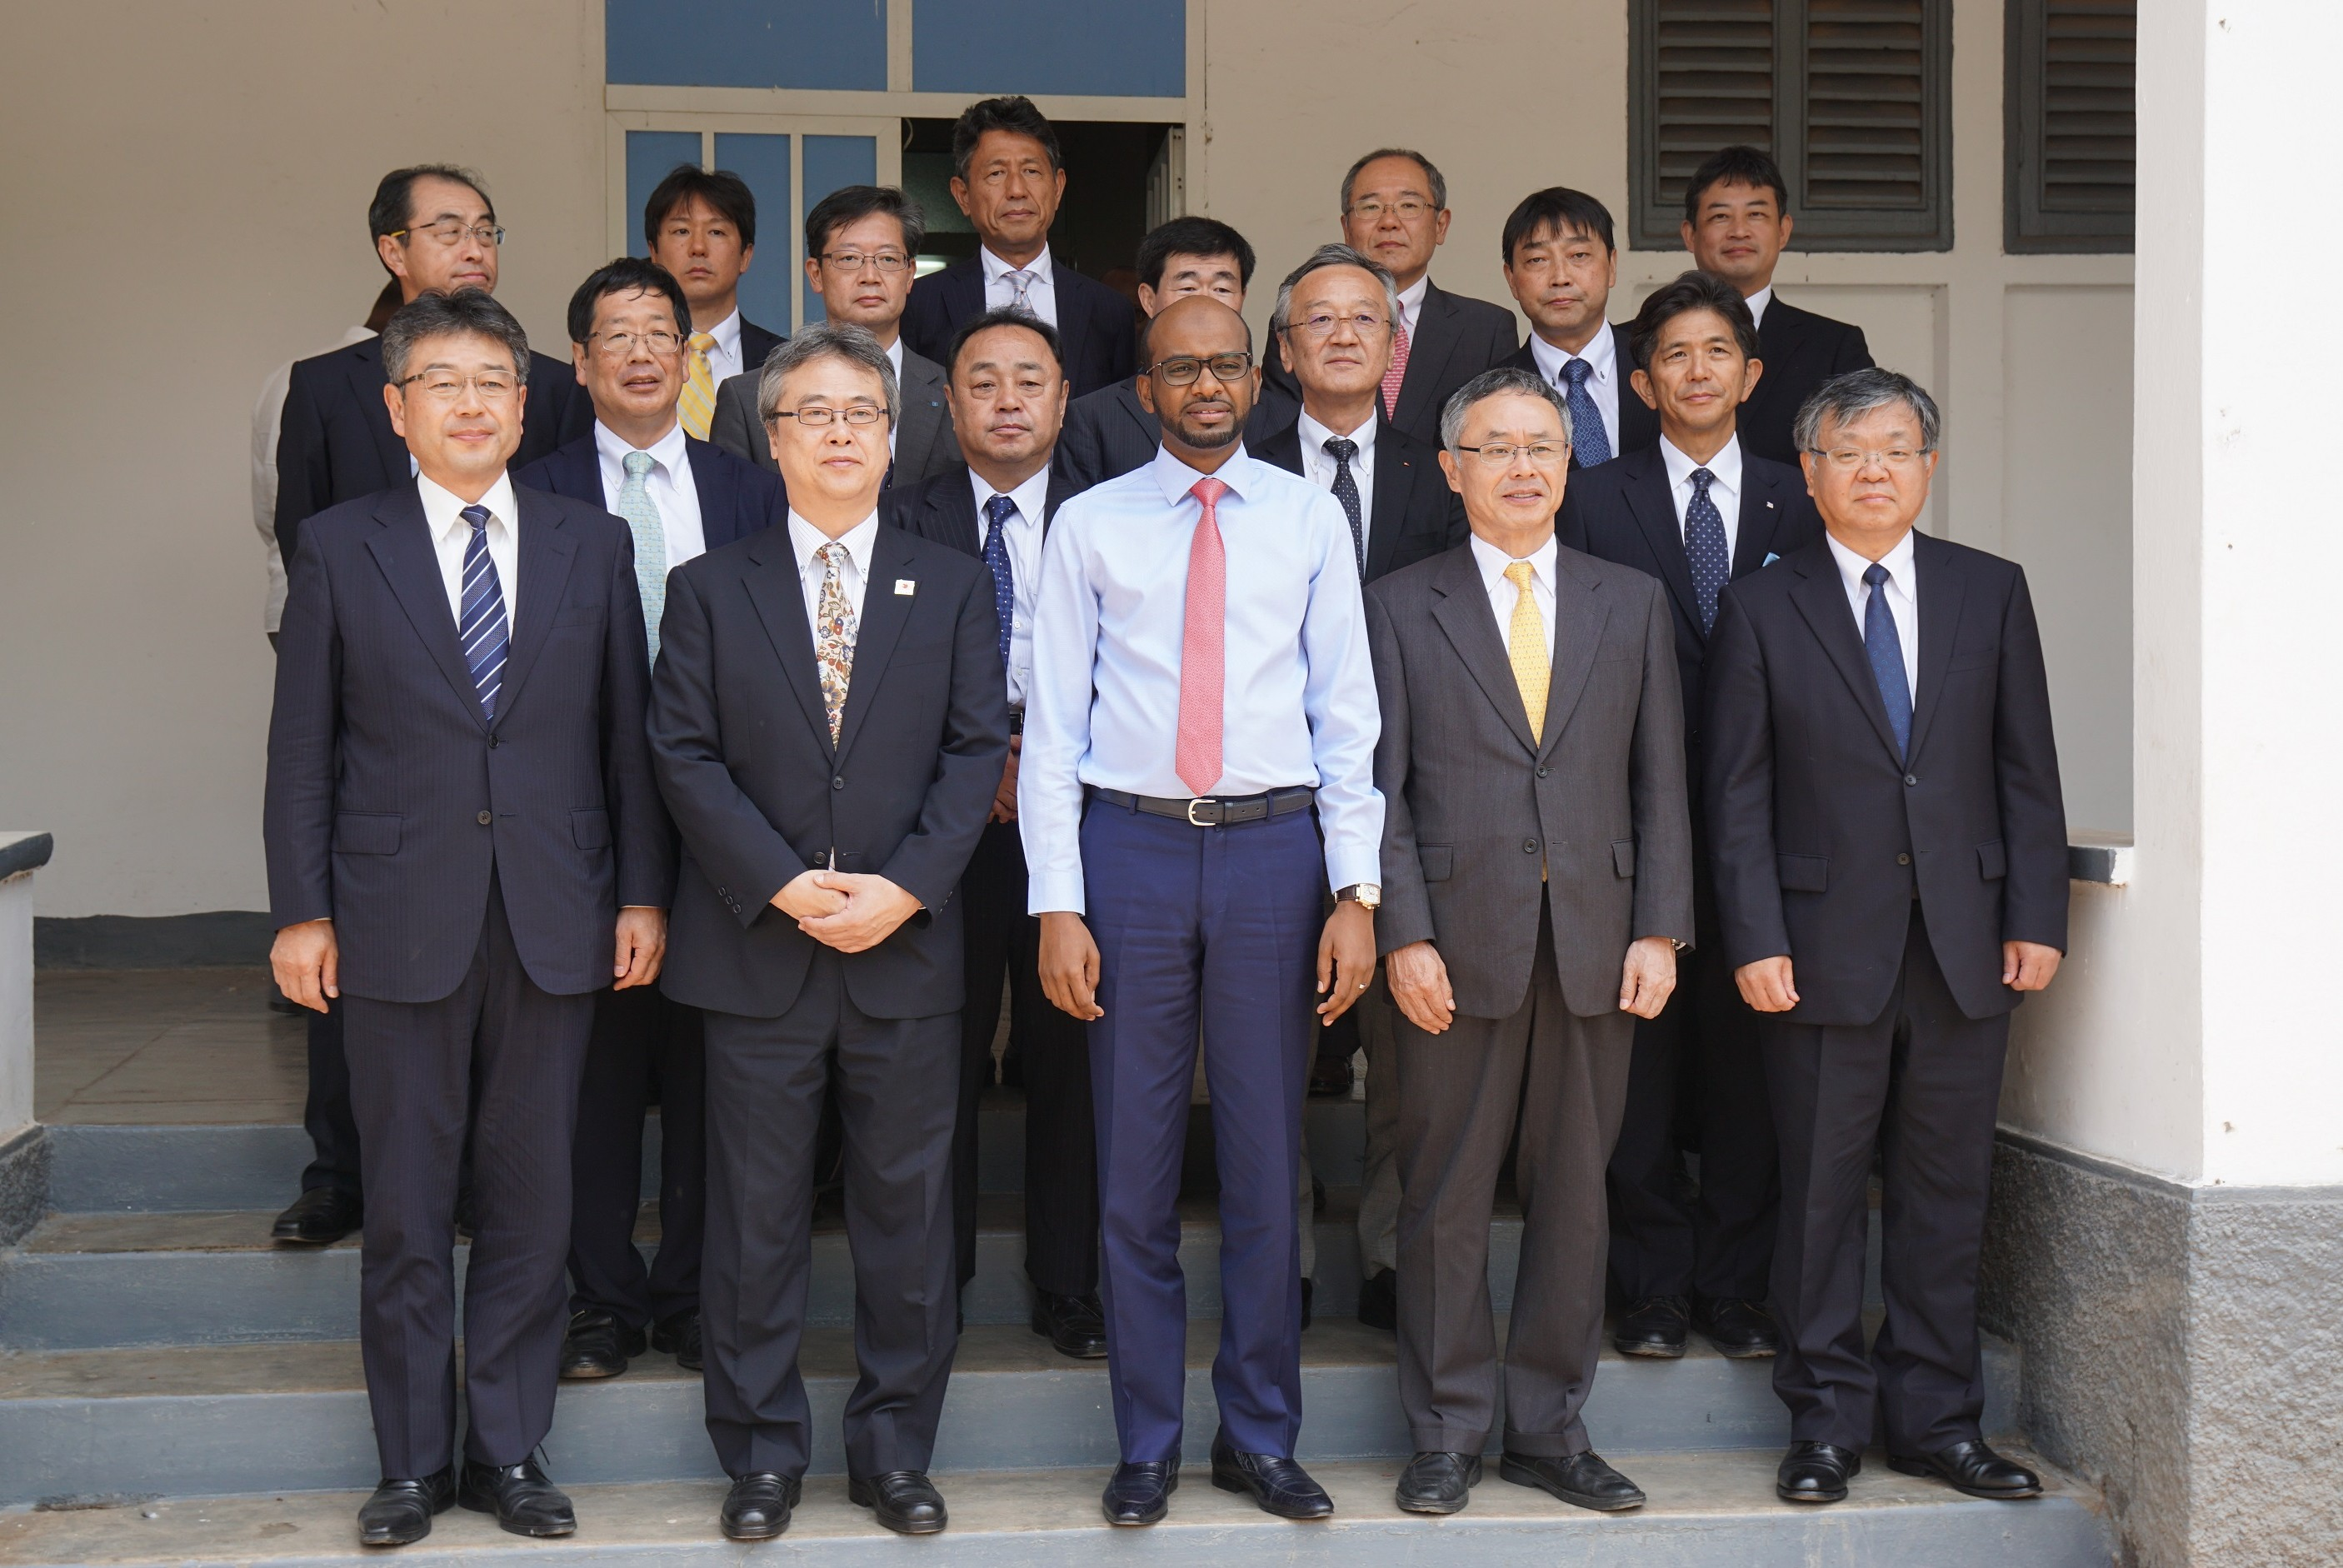 Delegation of Japanese Shipowners' Association visit Djibouti